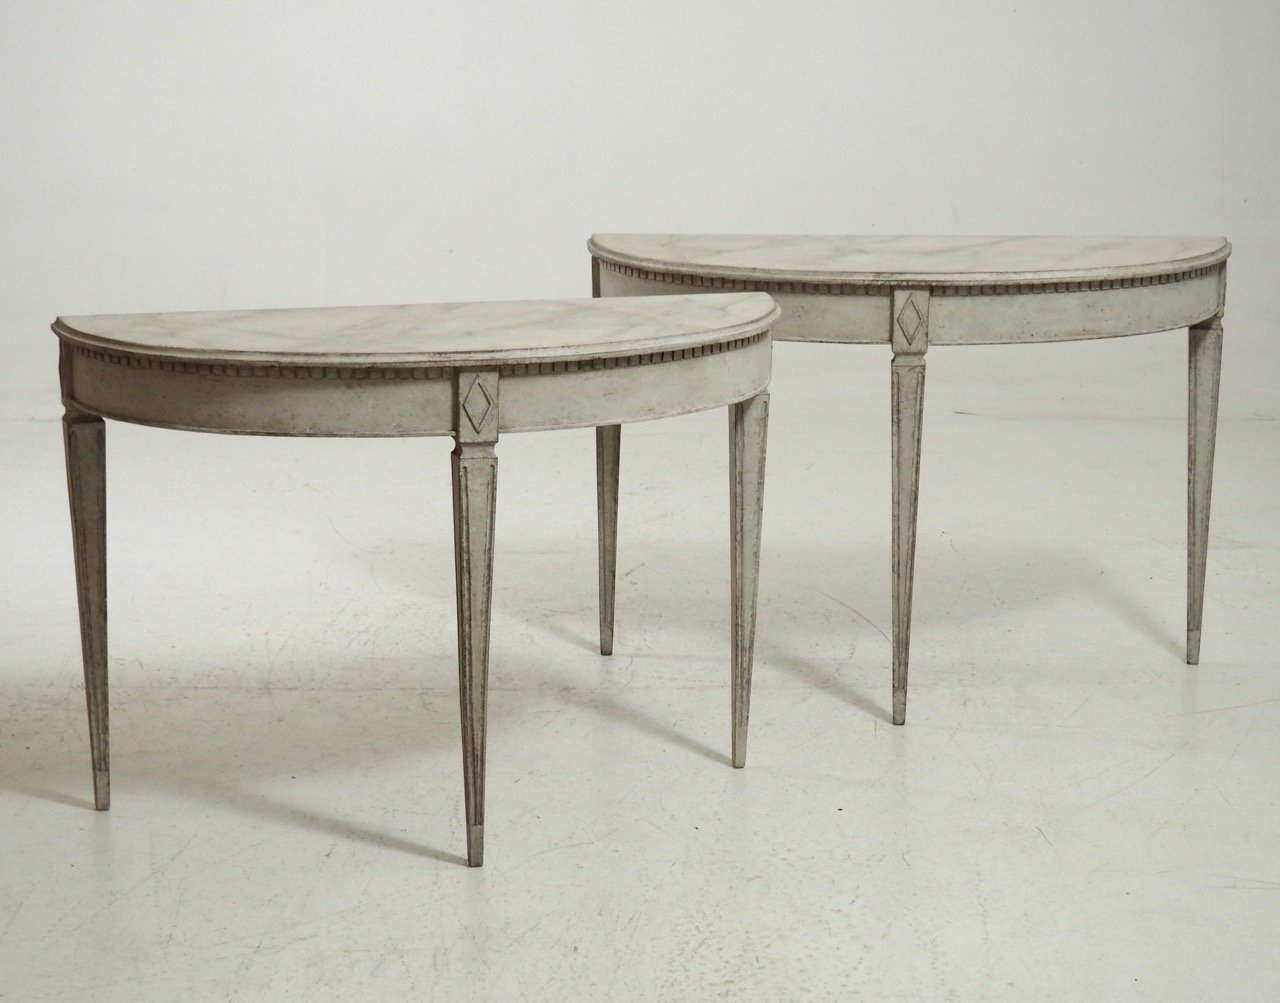 19th century gustavian demi lune tables set of 2 for sale at pamono. Black Bedroom Furniture Sets. Home Design Ideas